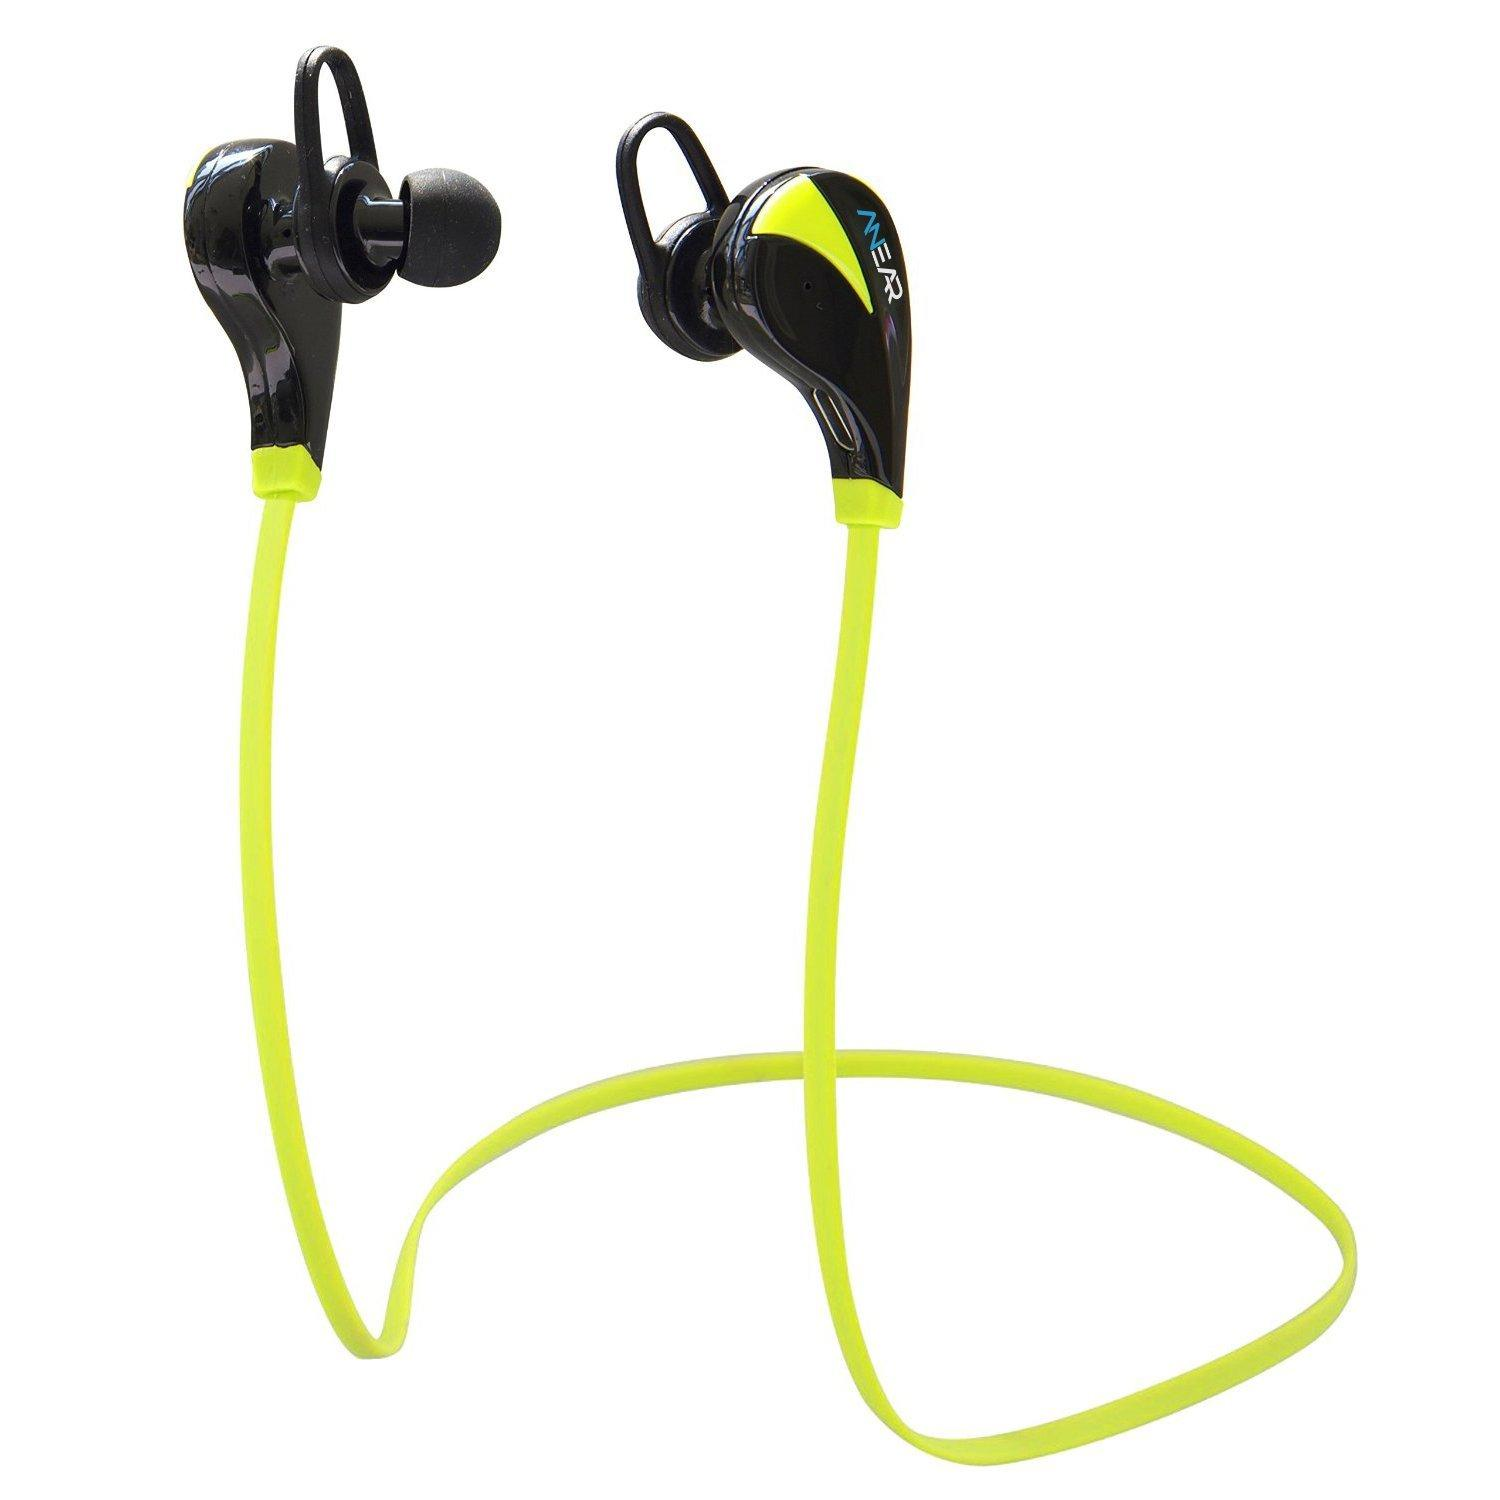 Anear Bluetooth Headphones Stereo Wireless Bluetooth Earbuds